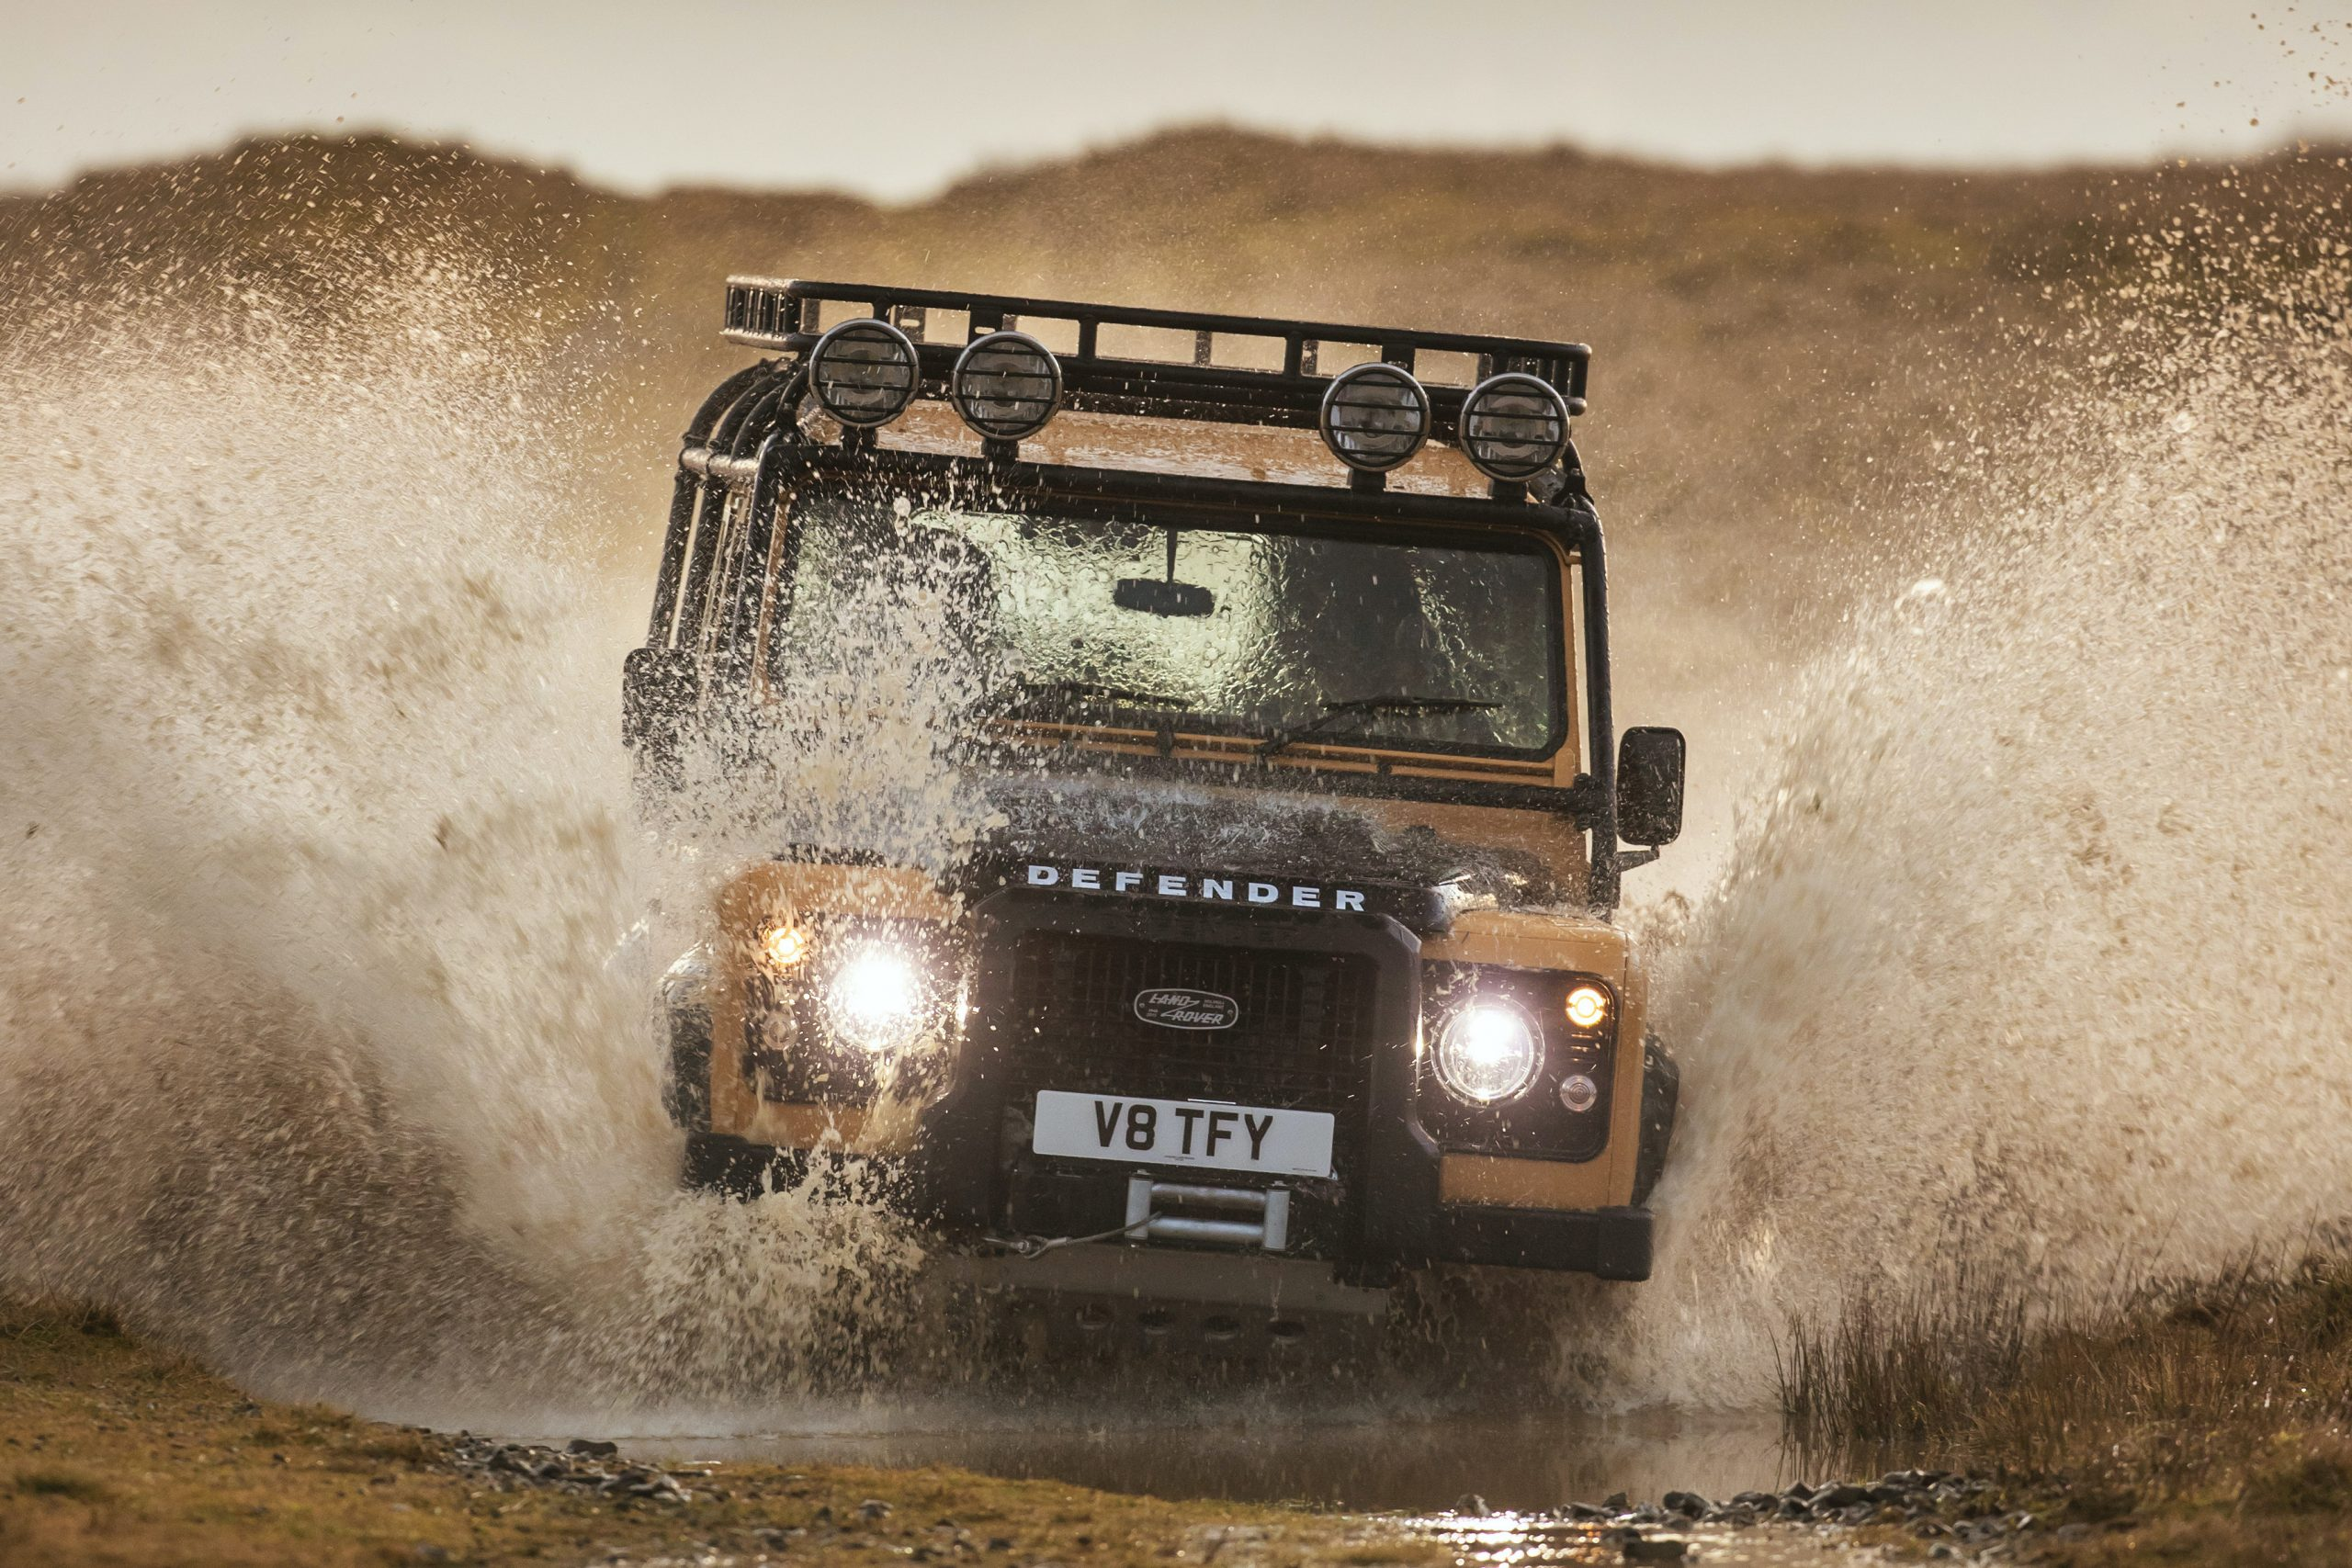 25 limited-edition V8 Trophy Defender cars to be built